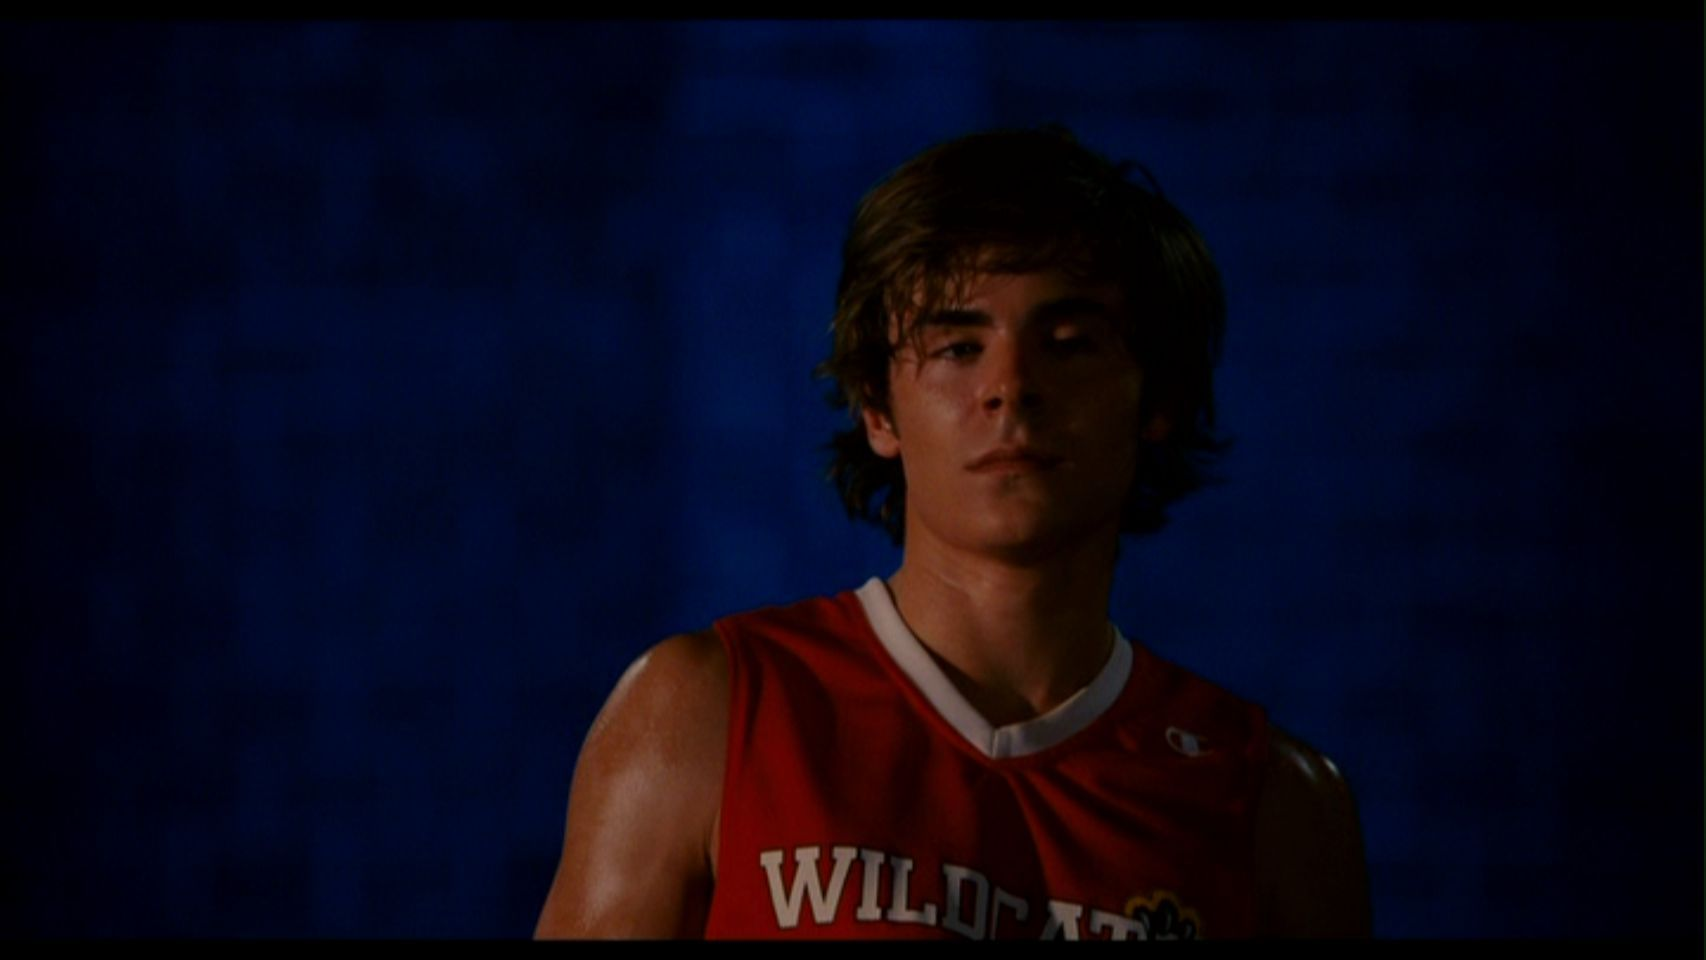 Zac Efron Hairstyle High School Musical 102